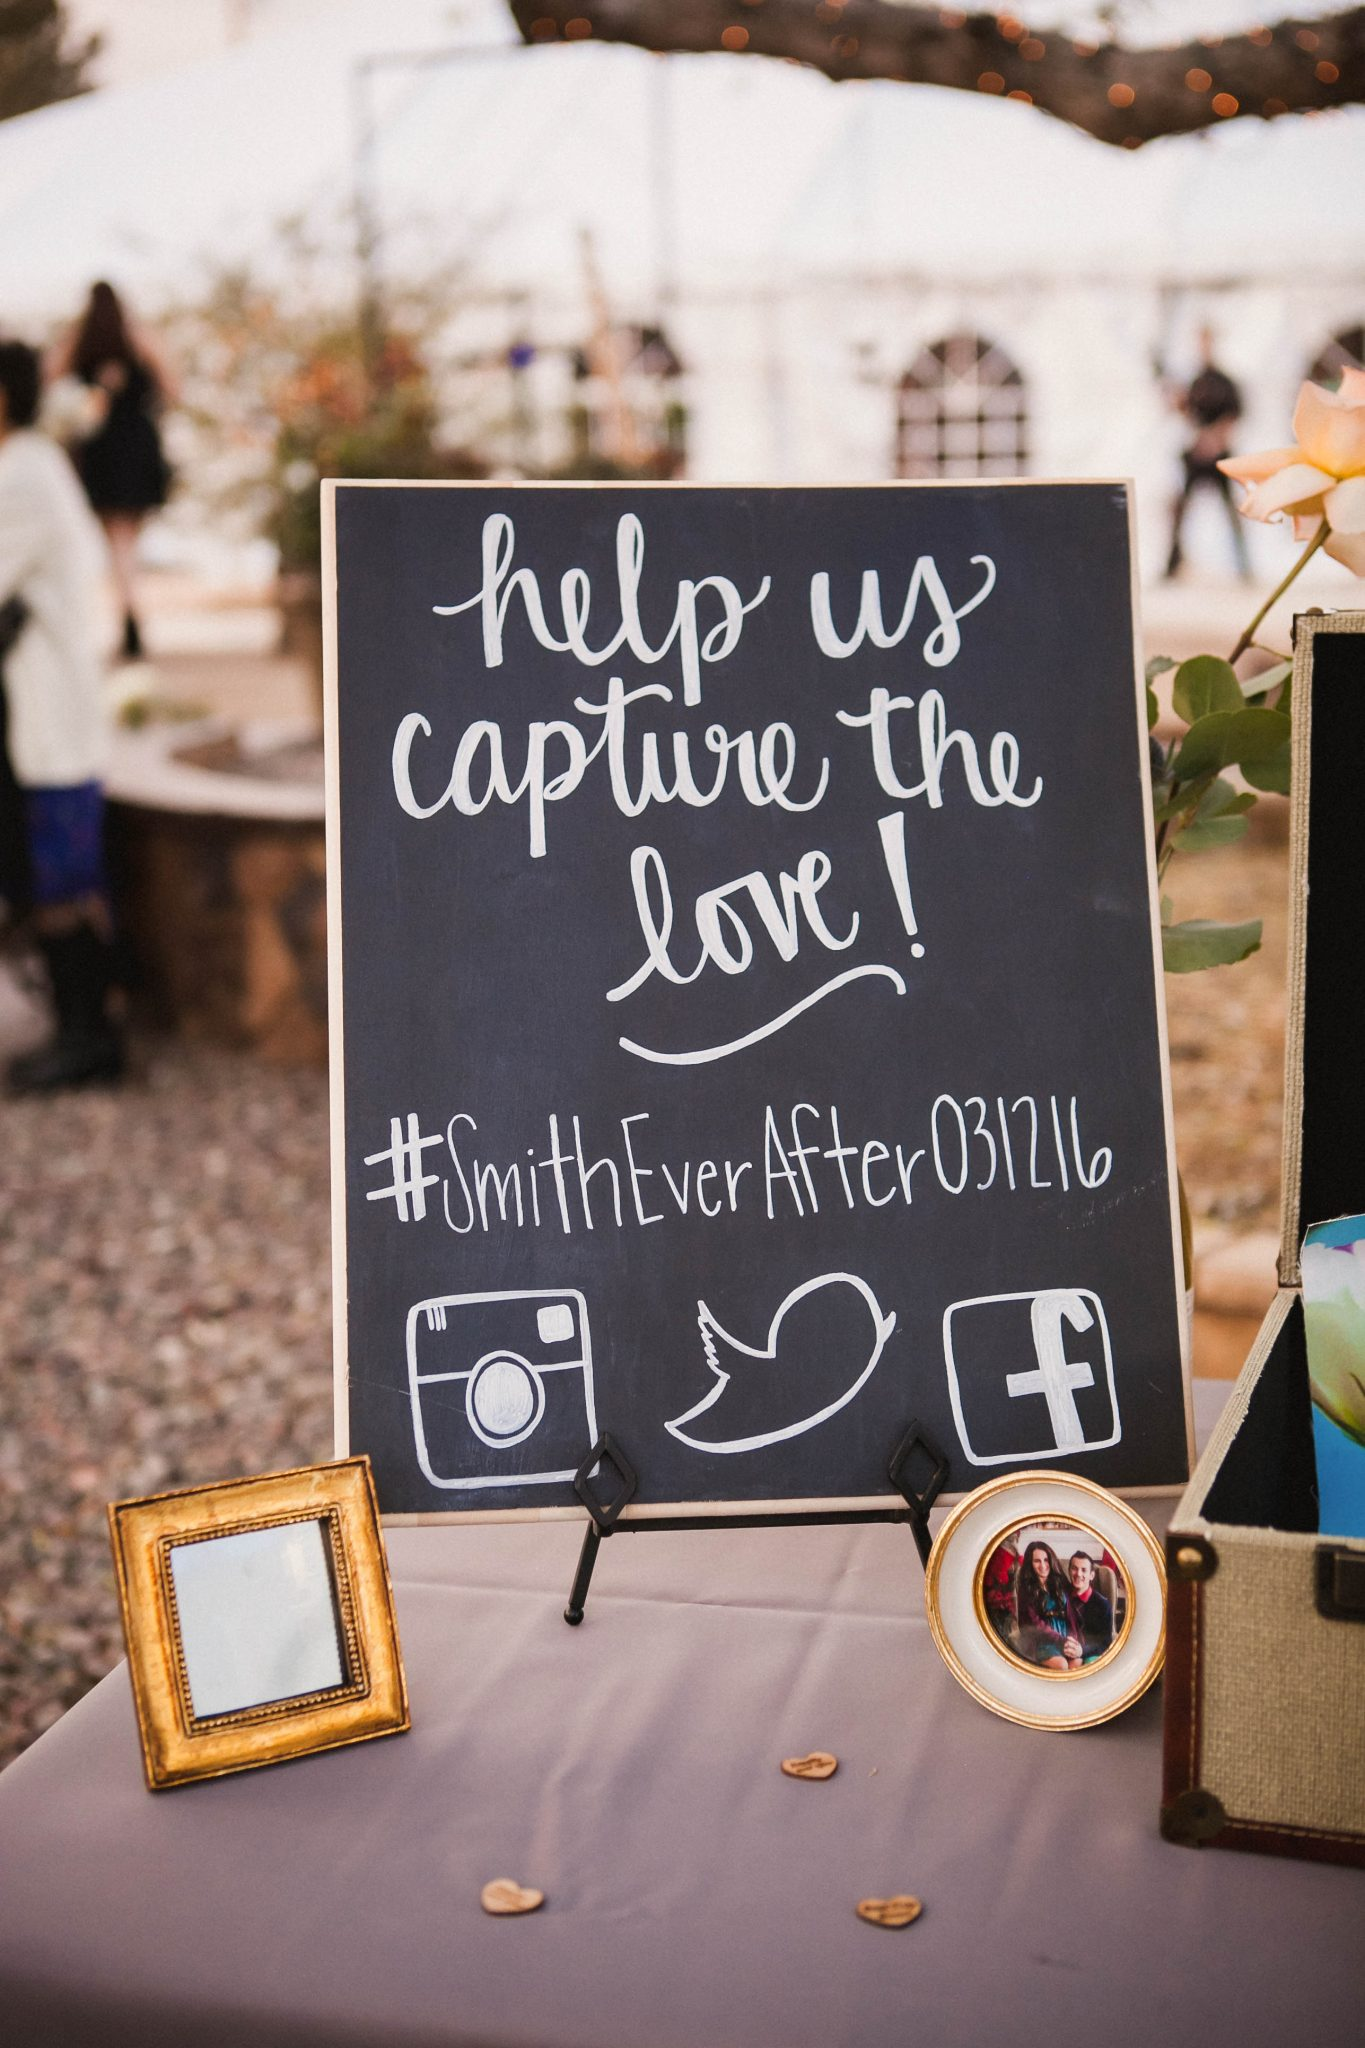 Wedding hashtag sign written on a chalkboard with white paint